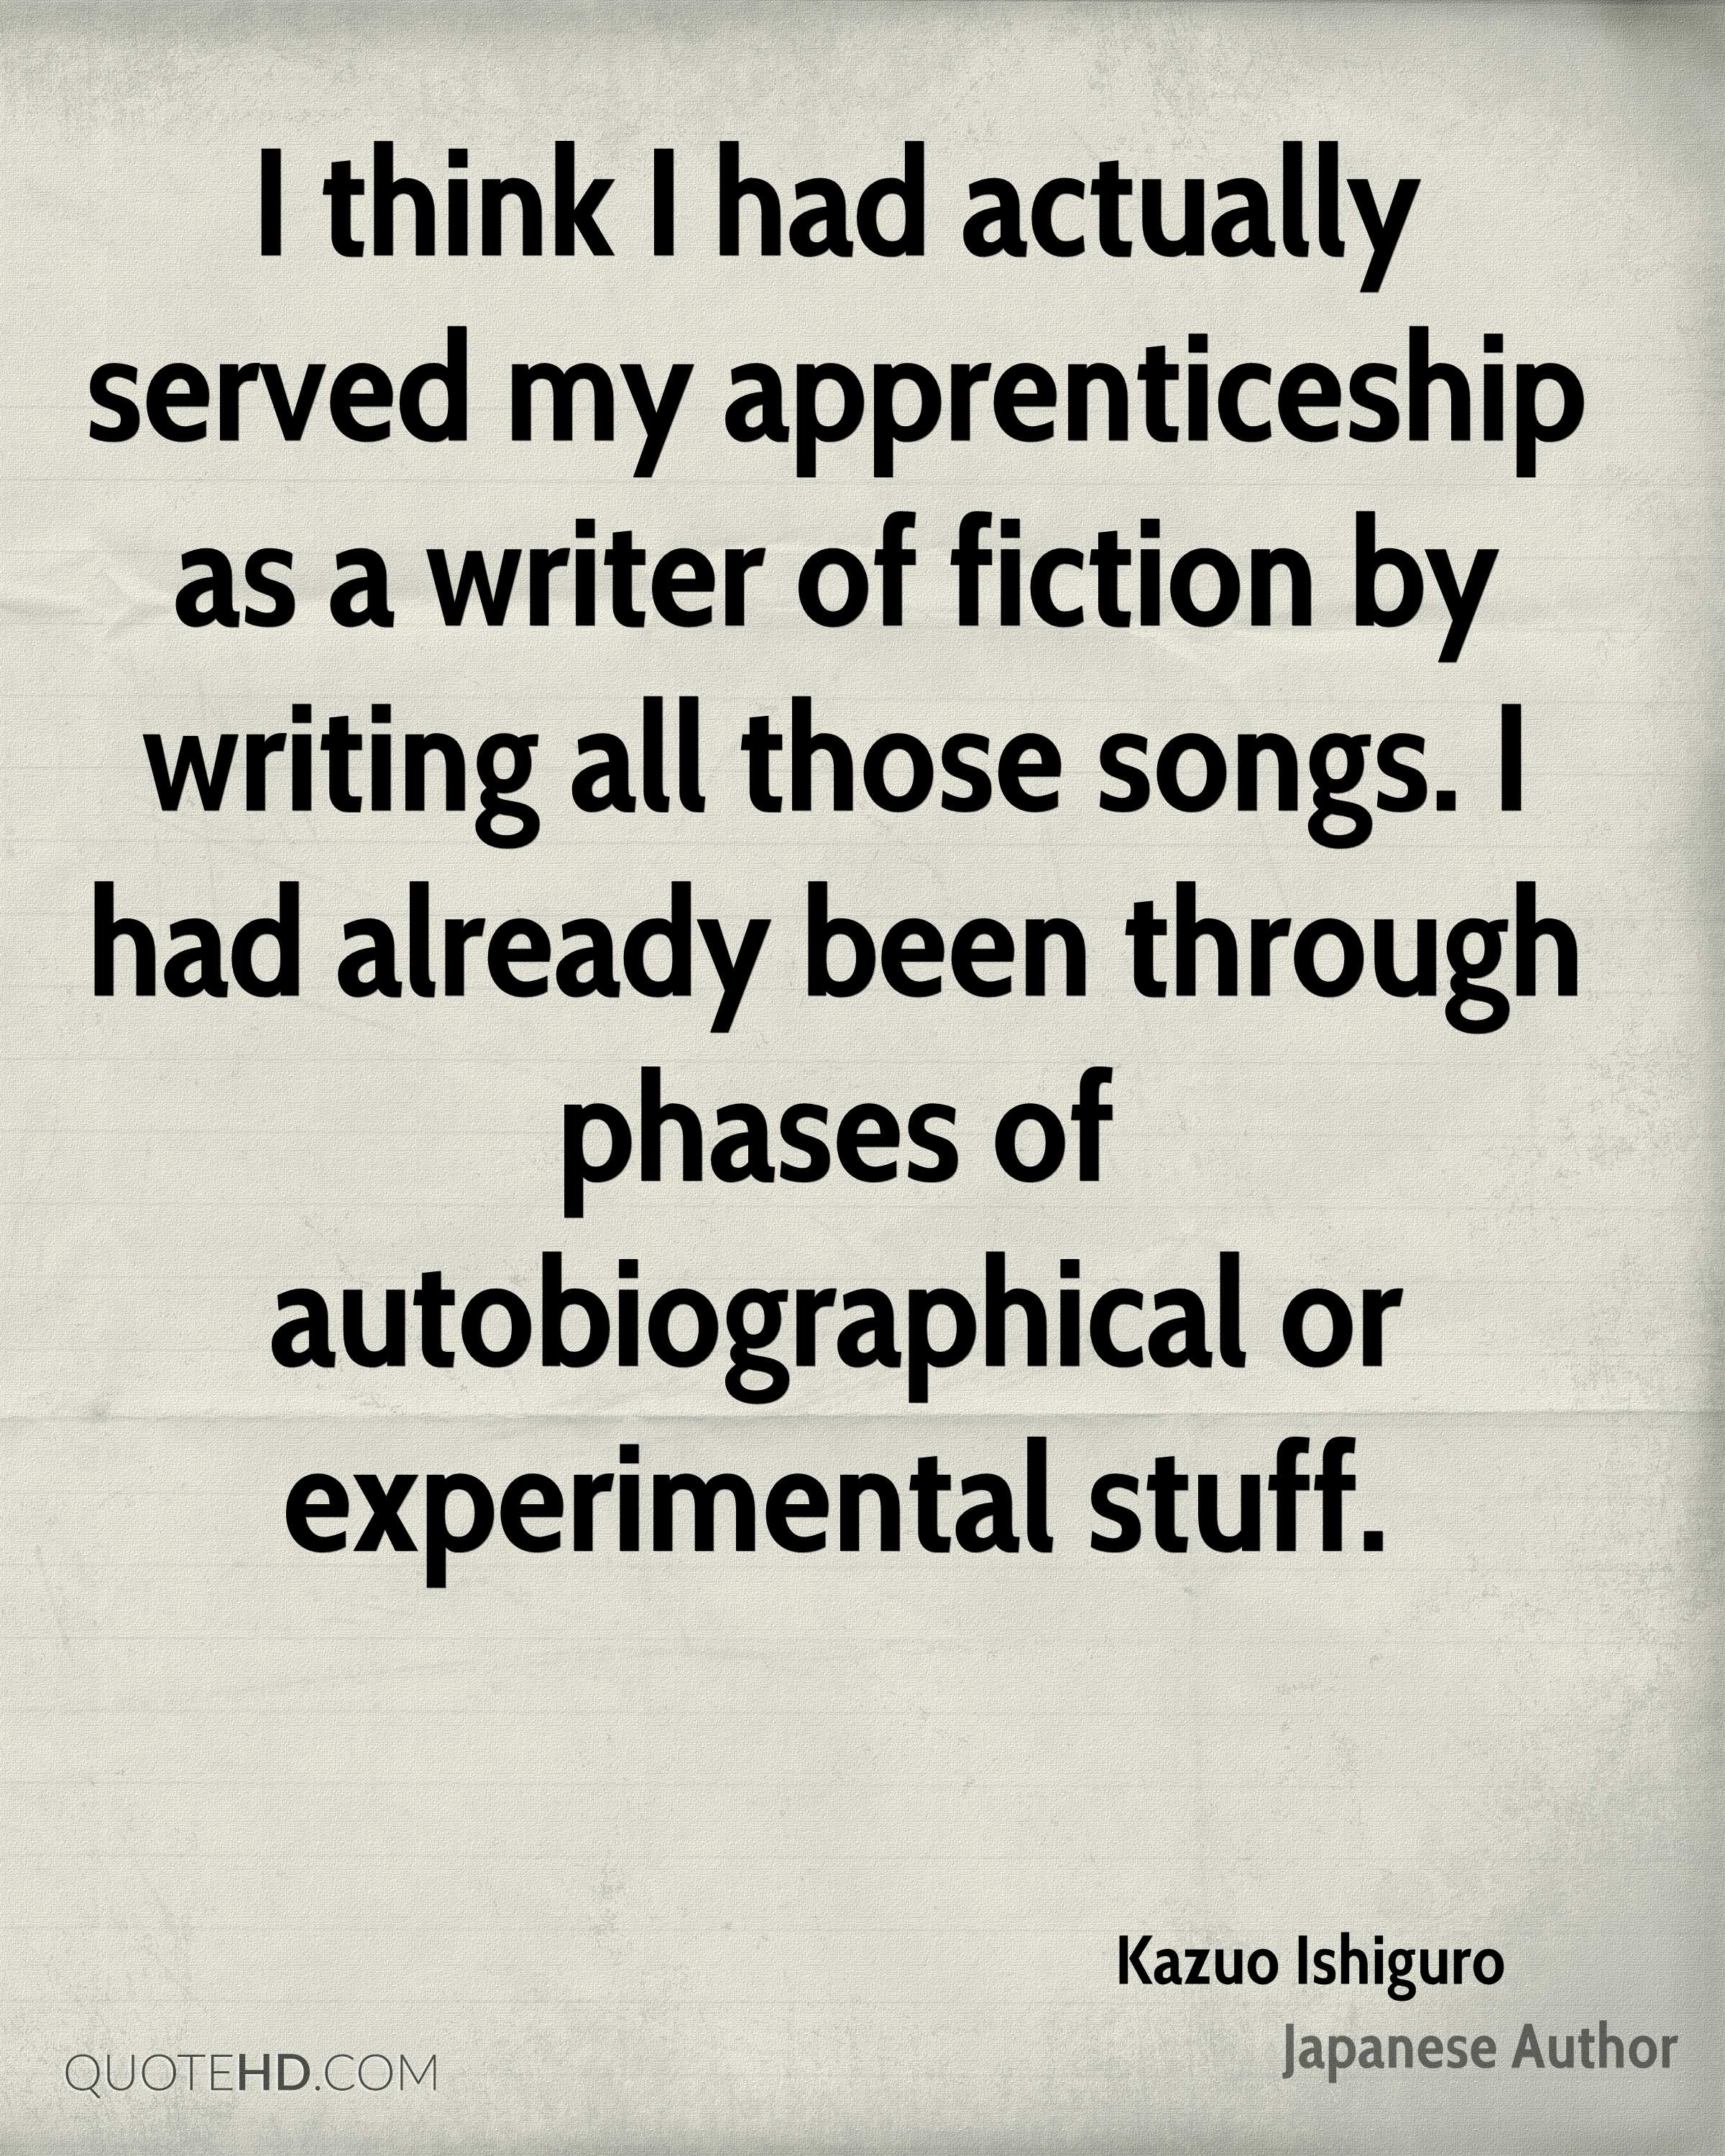 I think I had actually served my apprenticeship as a writer of fiction by writing all those songs. I had already been through phases of autobiographical or experimental stuff.